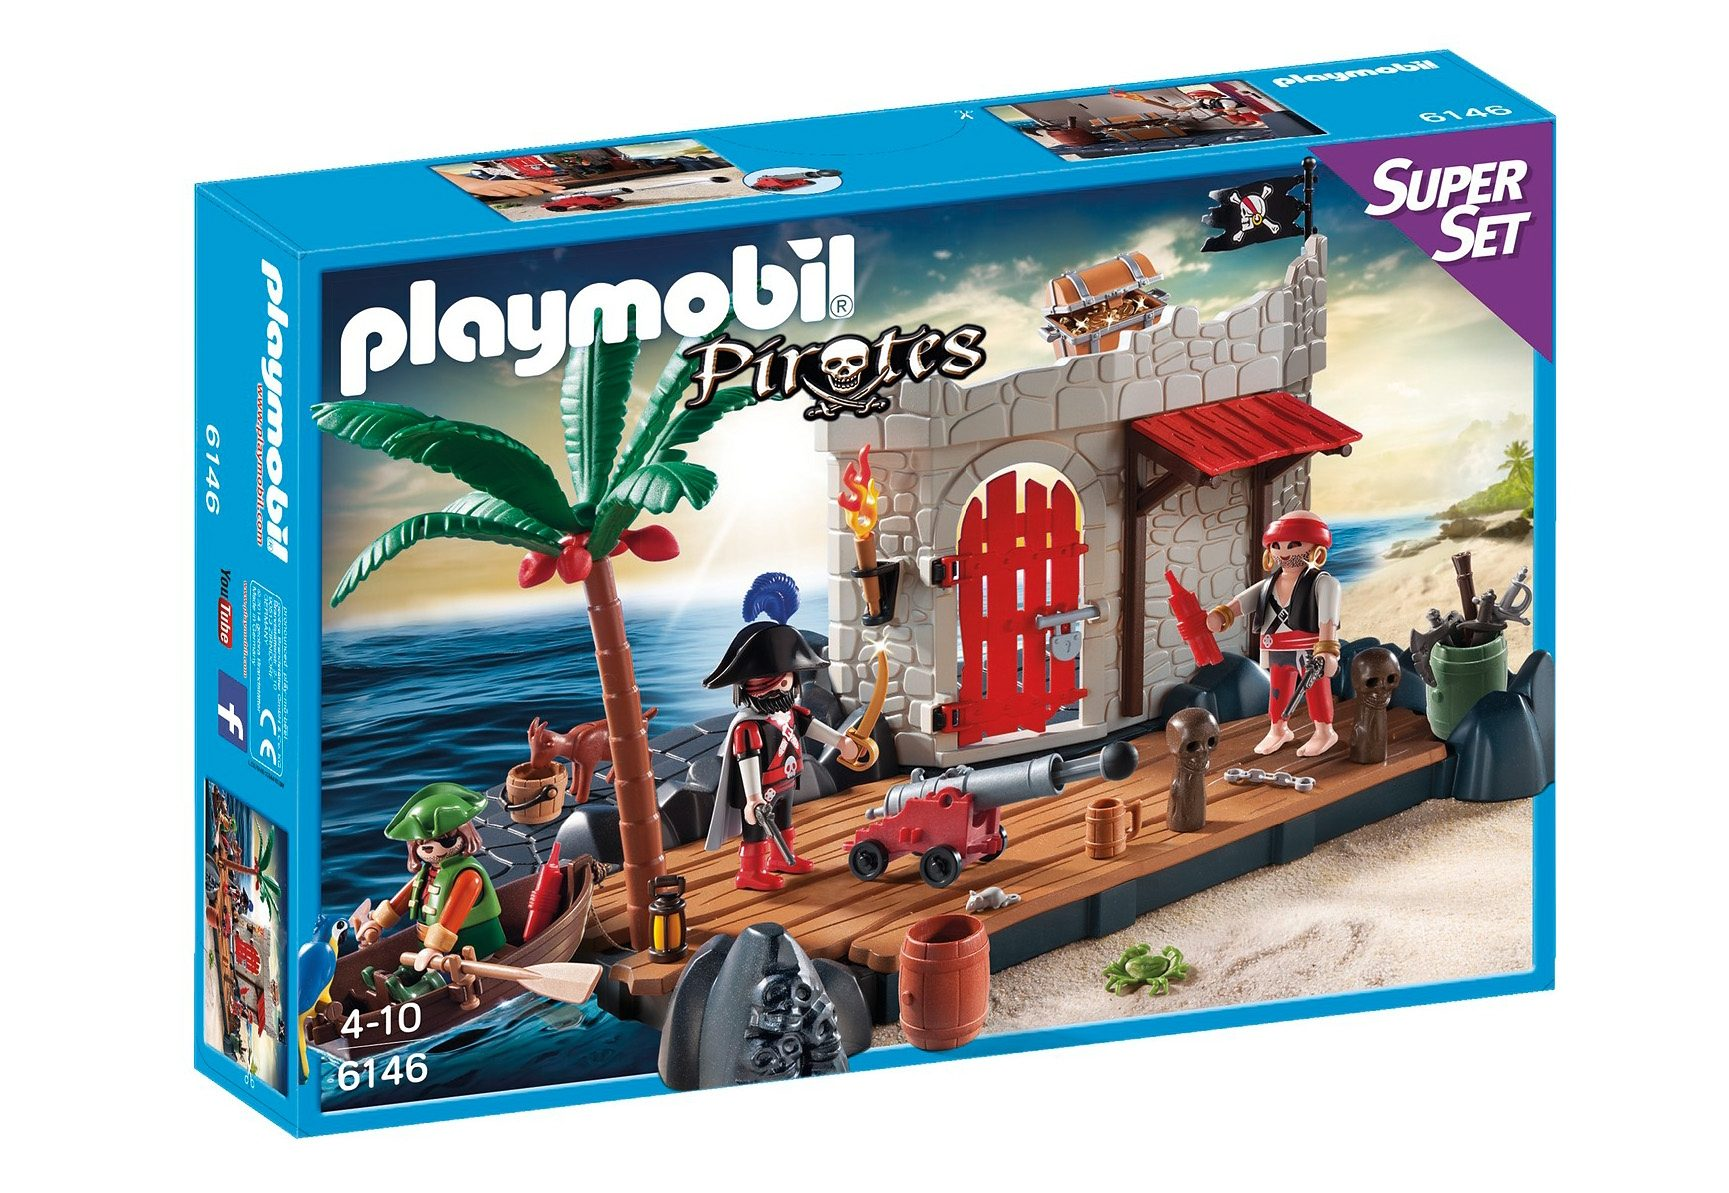 Playmobil® SuperSet Piratenfestung (6146), Pirates